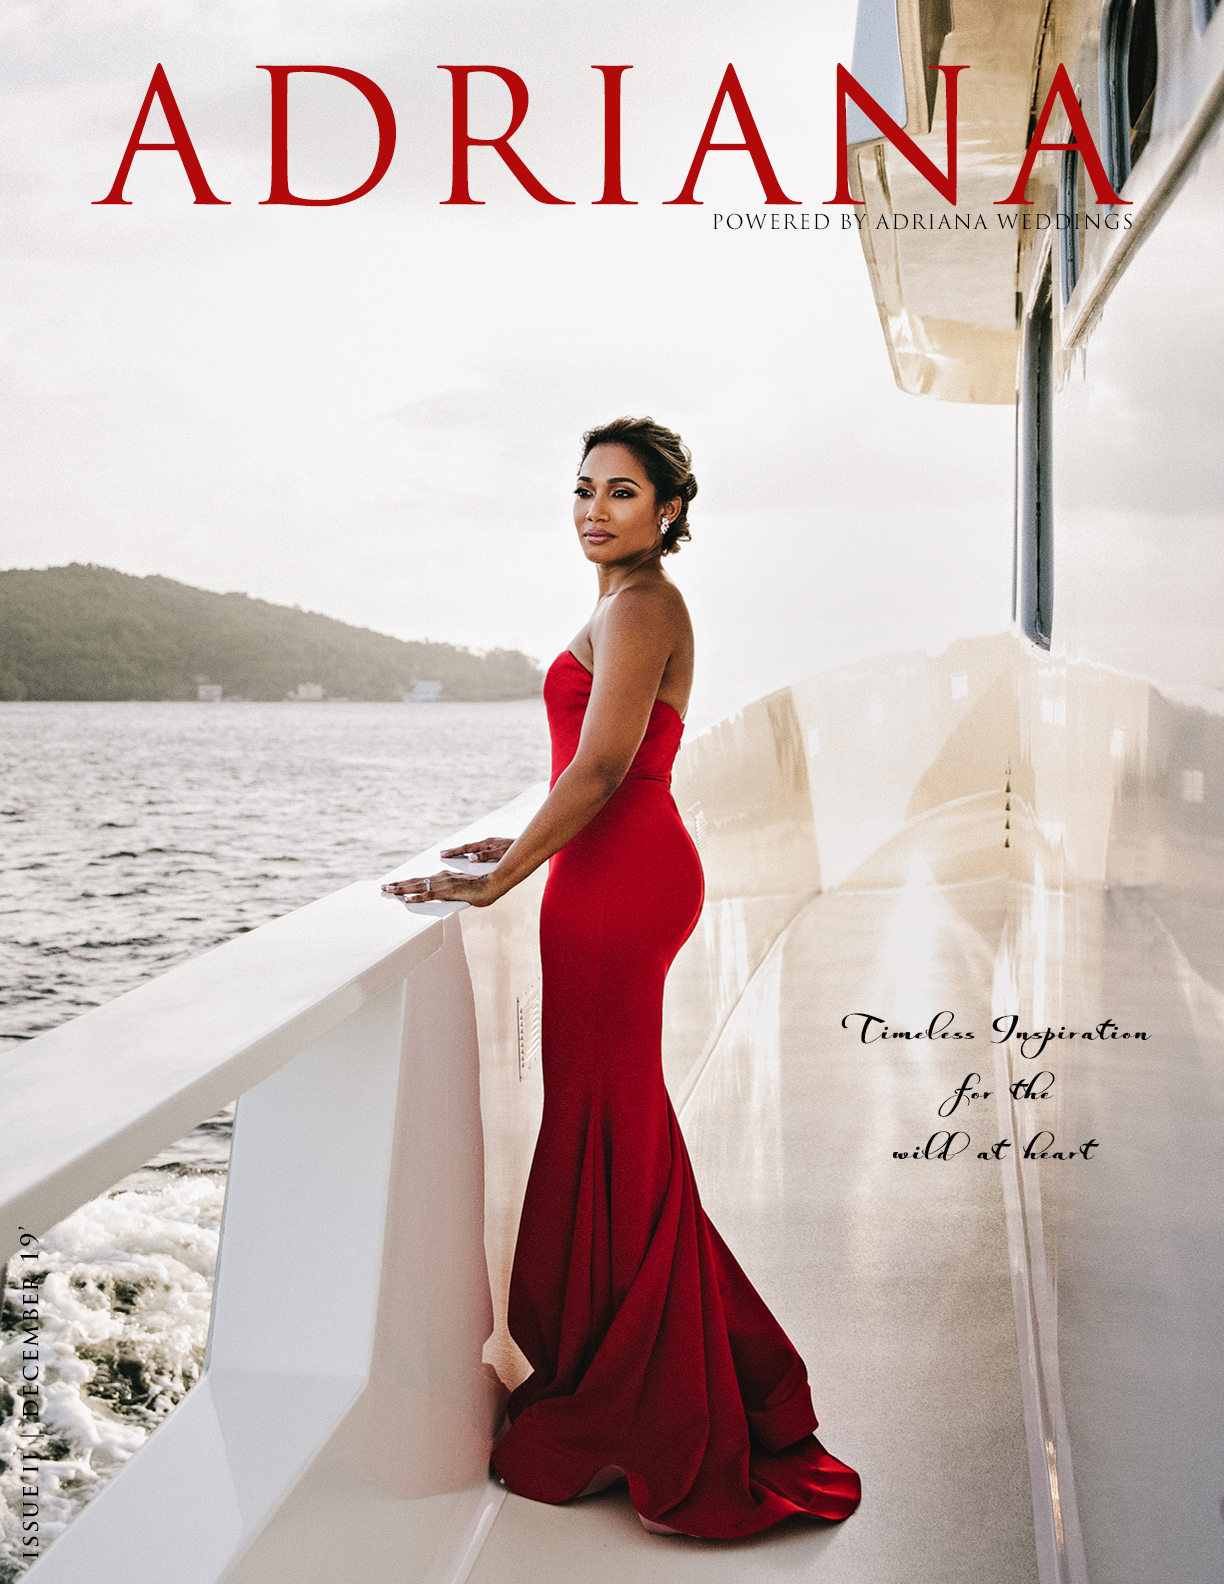 ADRIANA Magazine (Issue II), luxury destination weddings in the Caribbean & Mexico